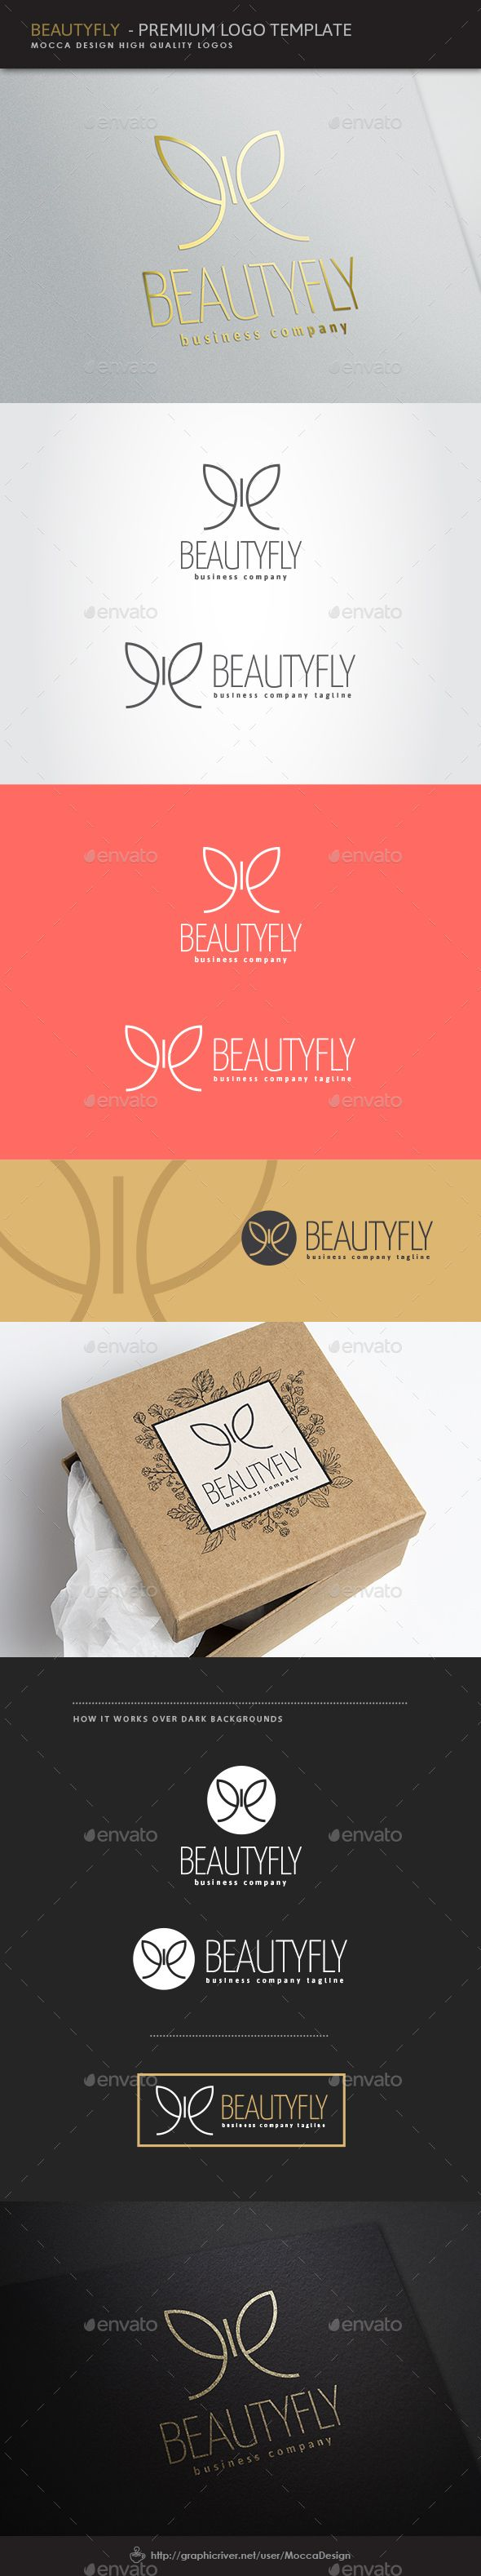 Beautyfly Logo — Transparent PNG #perfume #women • Available here → https://graphicriver.net/item/beautyfly-logo/8493569?ref=pxcr